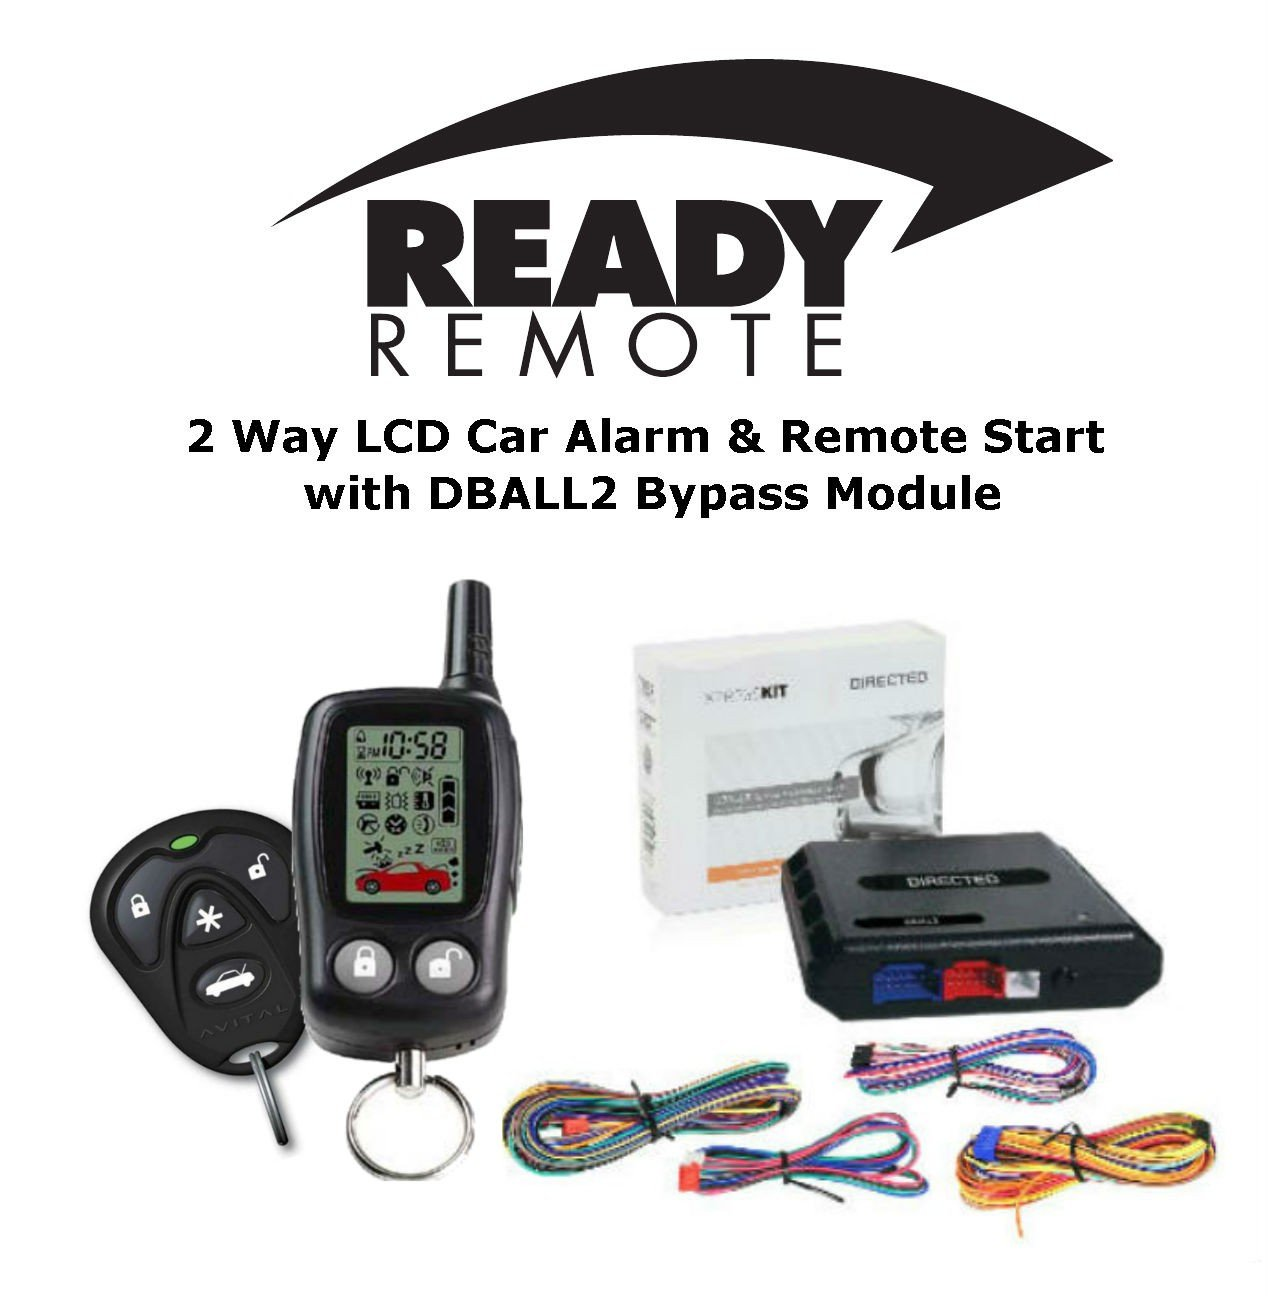 71OfNTqB3uL._SL1296_ amazon com ready remote 5303r 2 way car alarm & remote starter w Dball2 Wiring-Diagram Intelli Key Nissan Armada at couponss.co